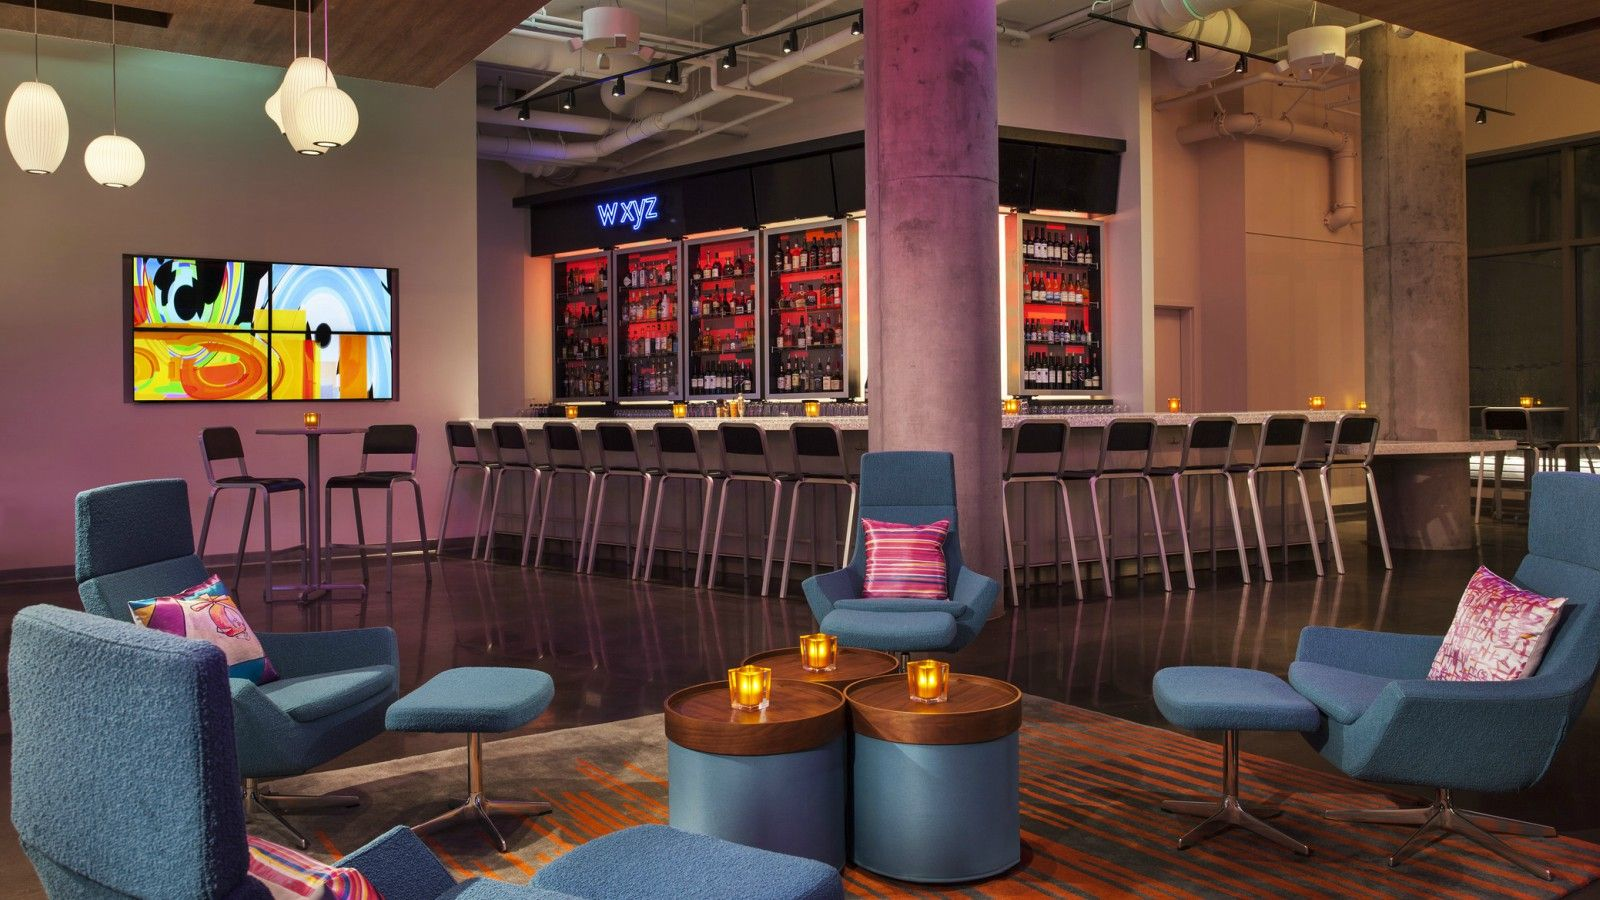 Boston Wedding Venues - W XYZ bar